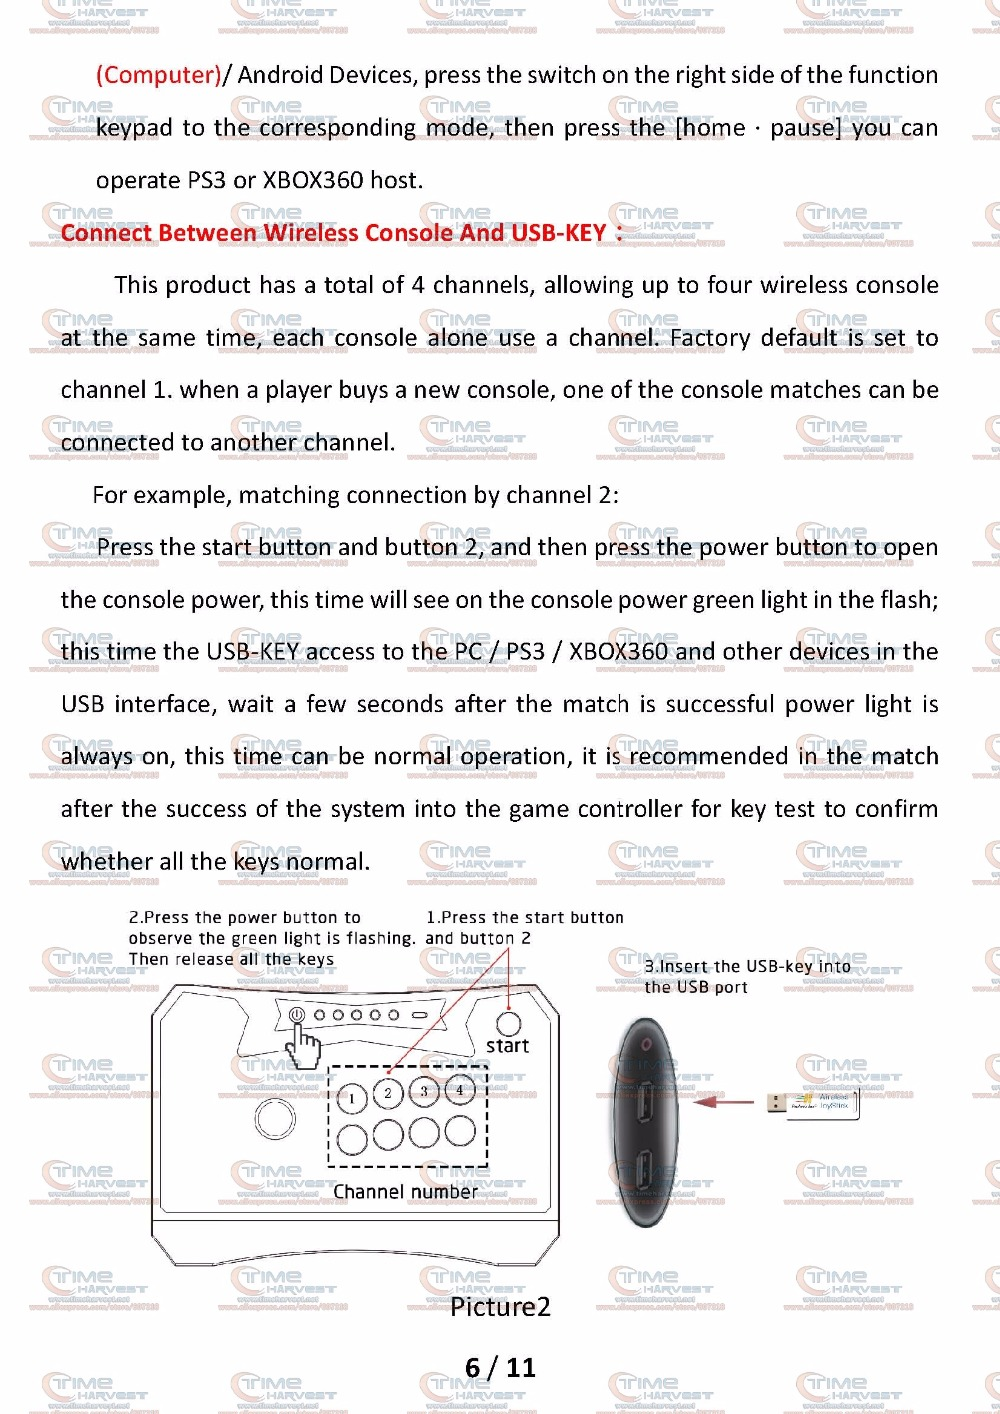 20170525-pandora's box wireless joystick user manual__06